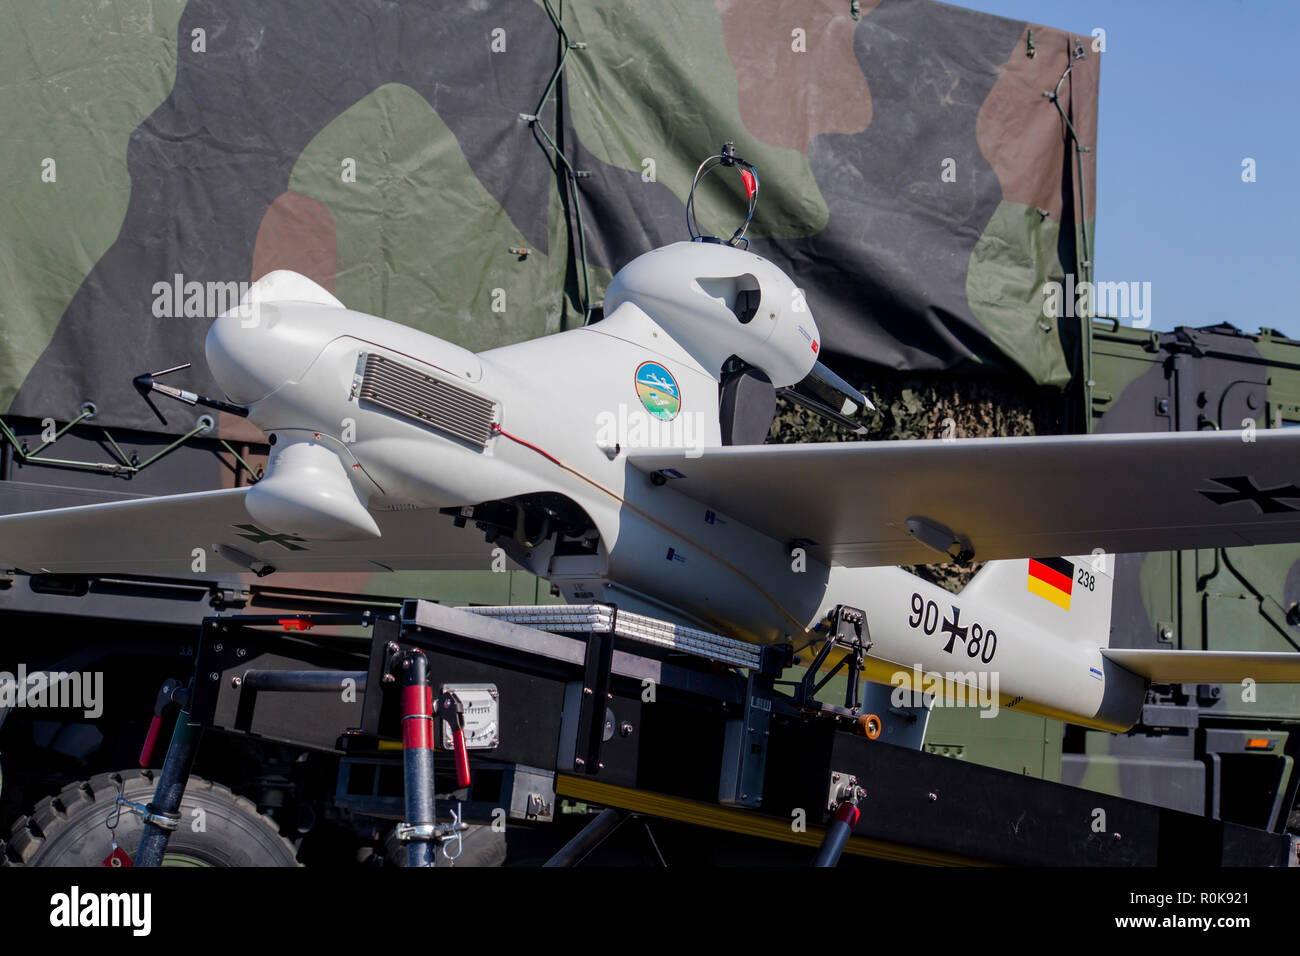 Luna drone of the German Forces with launcher vehicle. - Stock Image